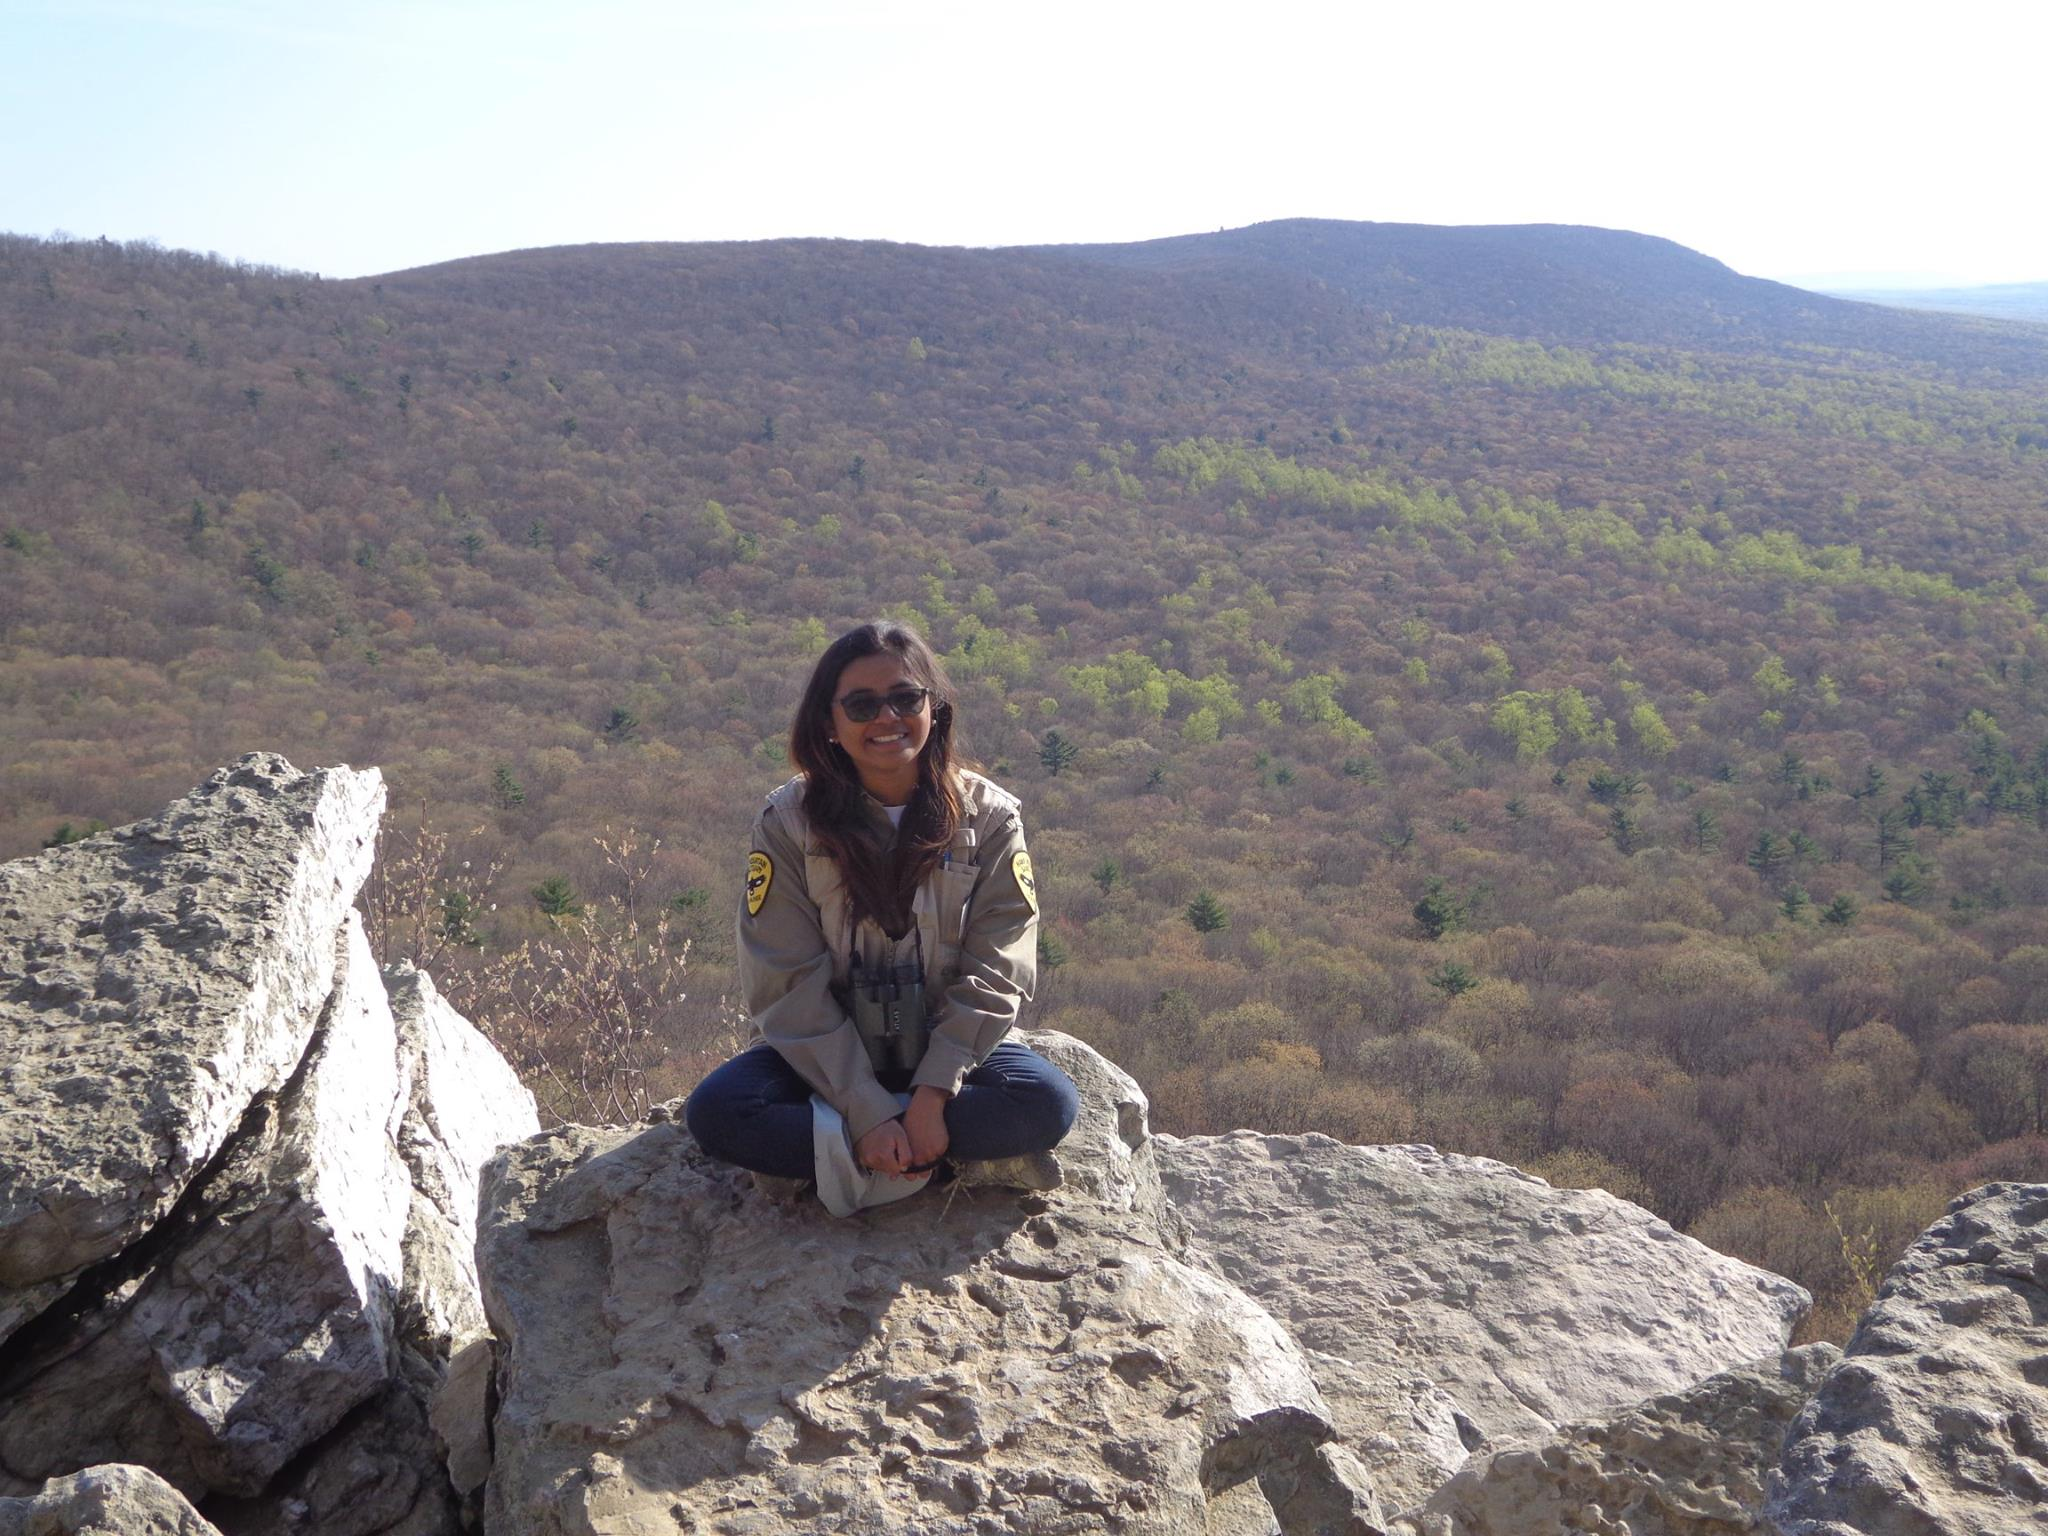 Pat sitting atop boulders at South Lookout during her traineeship in 2016.